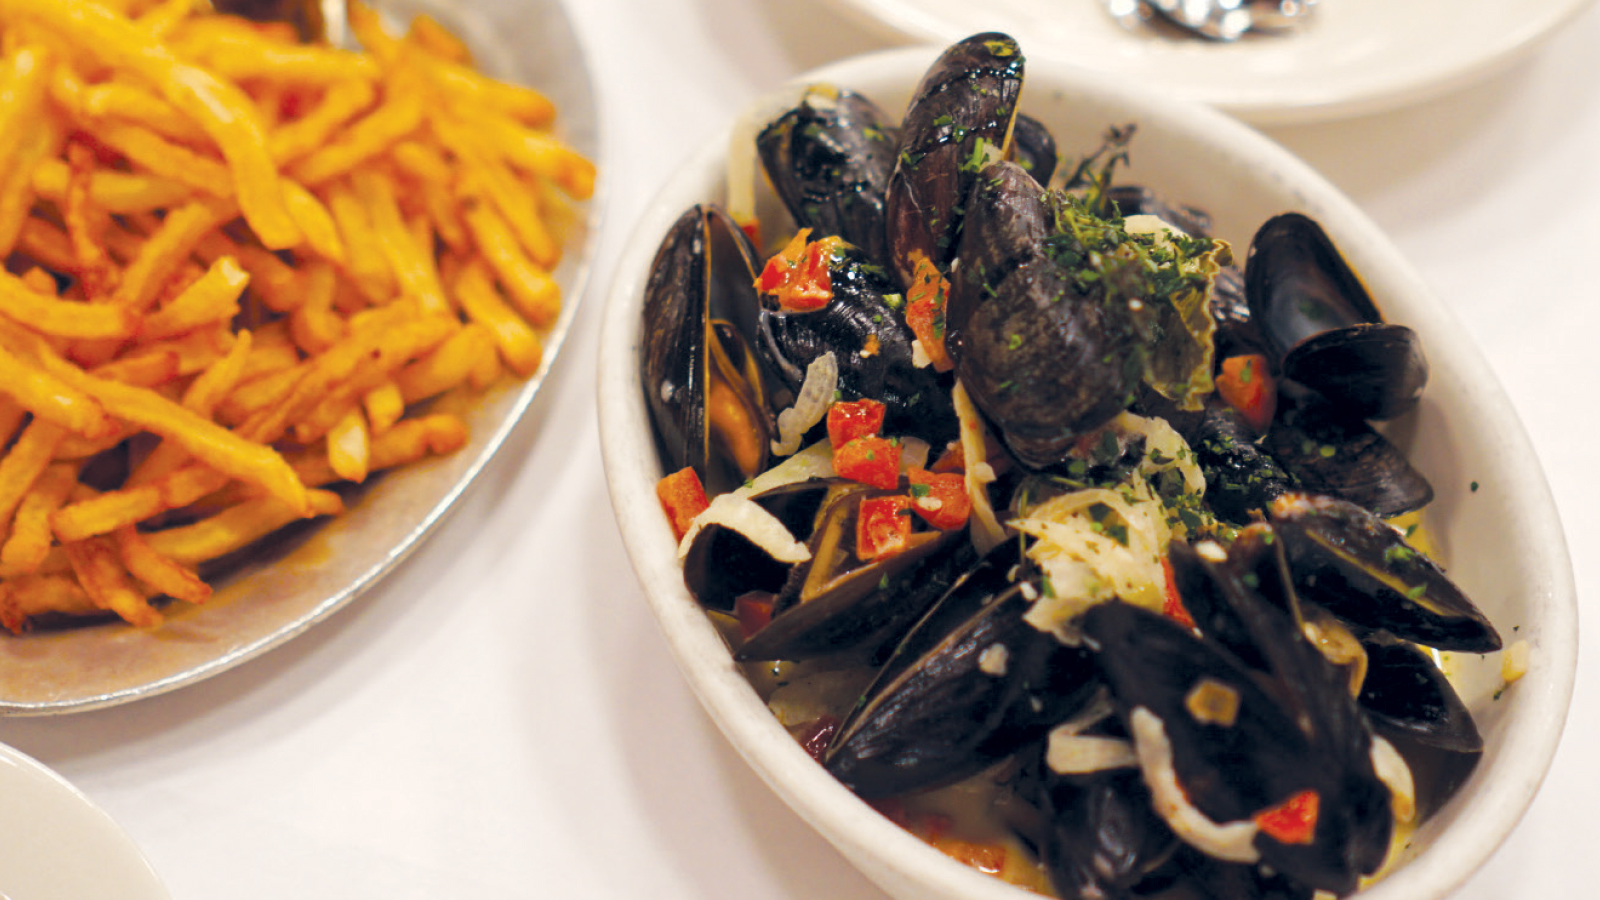 bowl of mussels and fries at Sardine